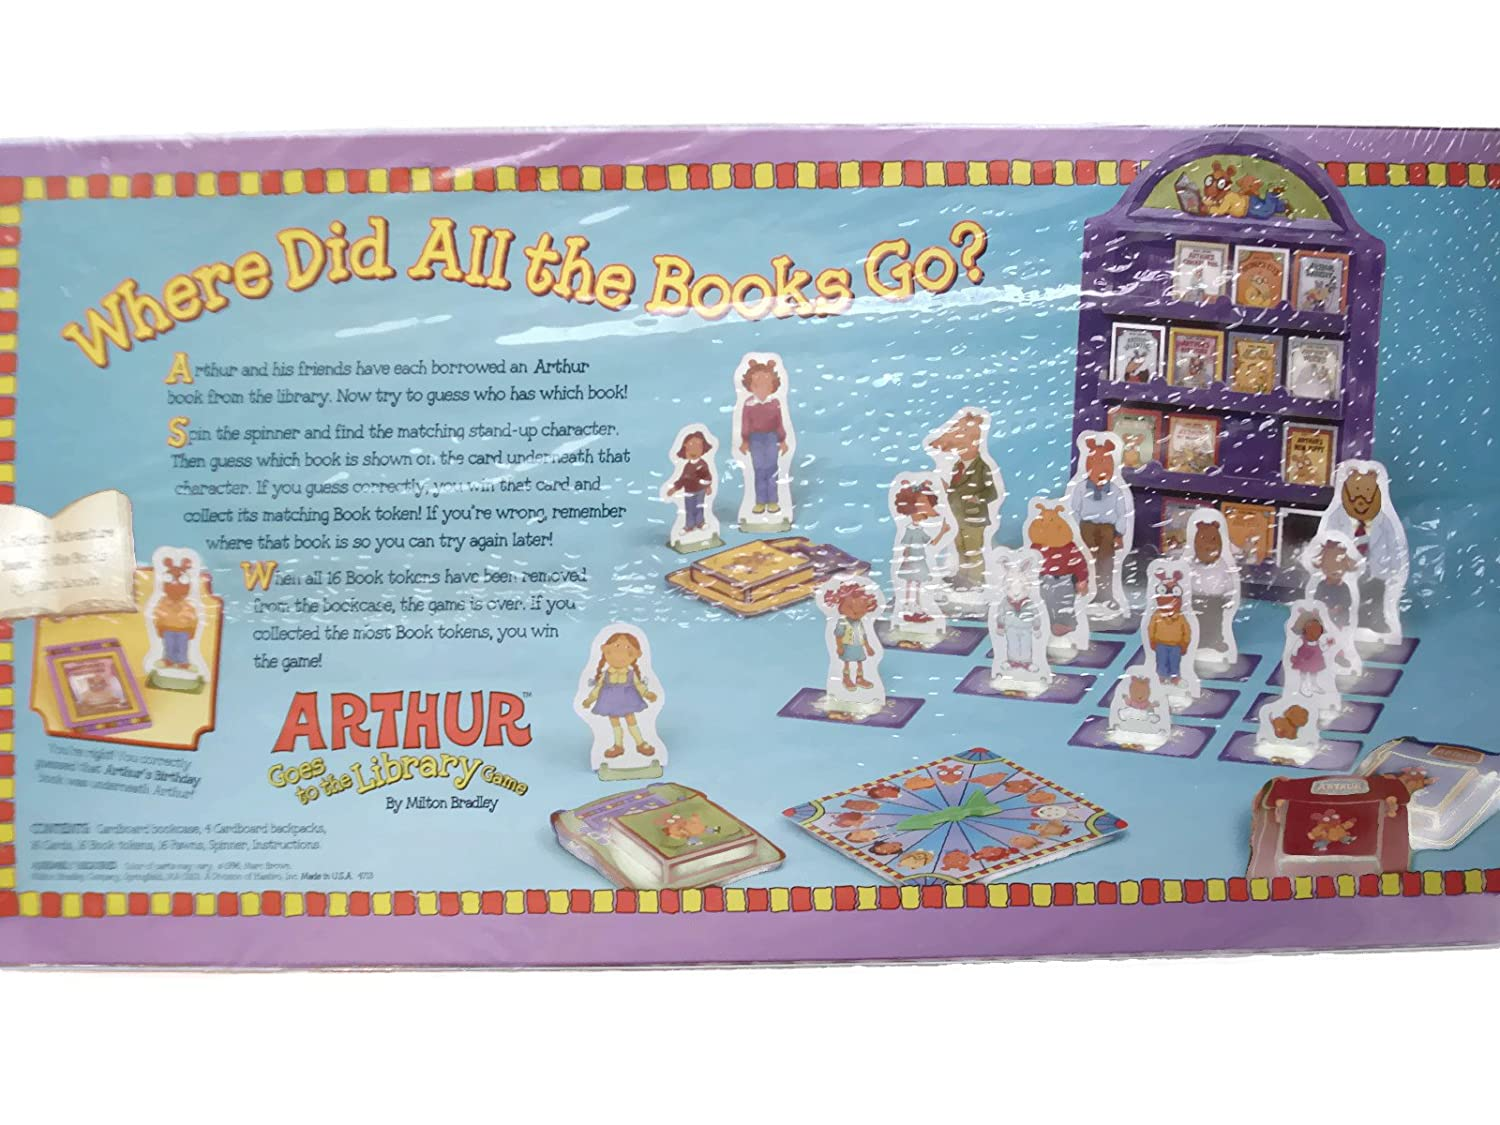 amazon com arthur goes to the library game by marc brown toys